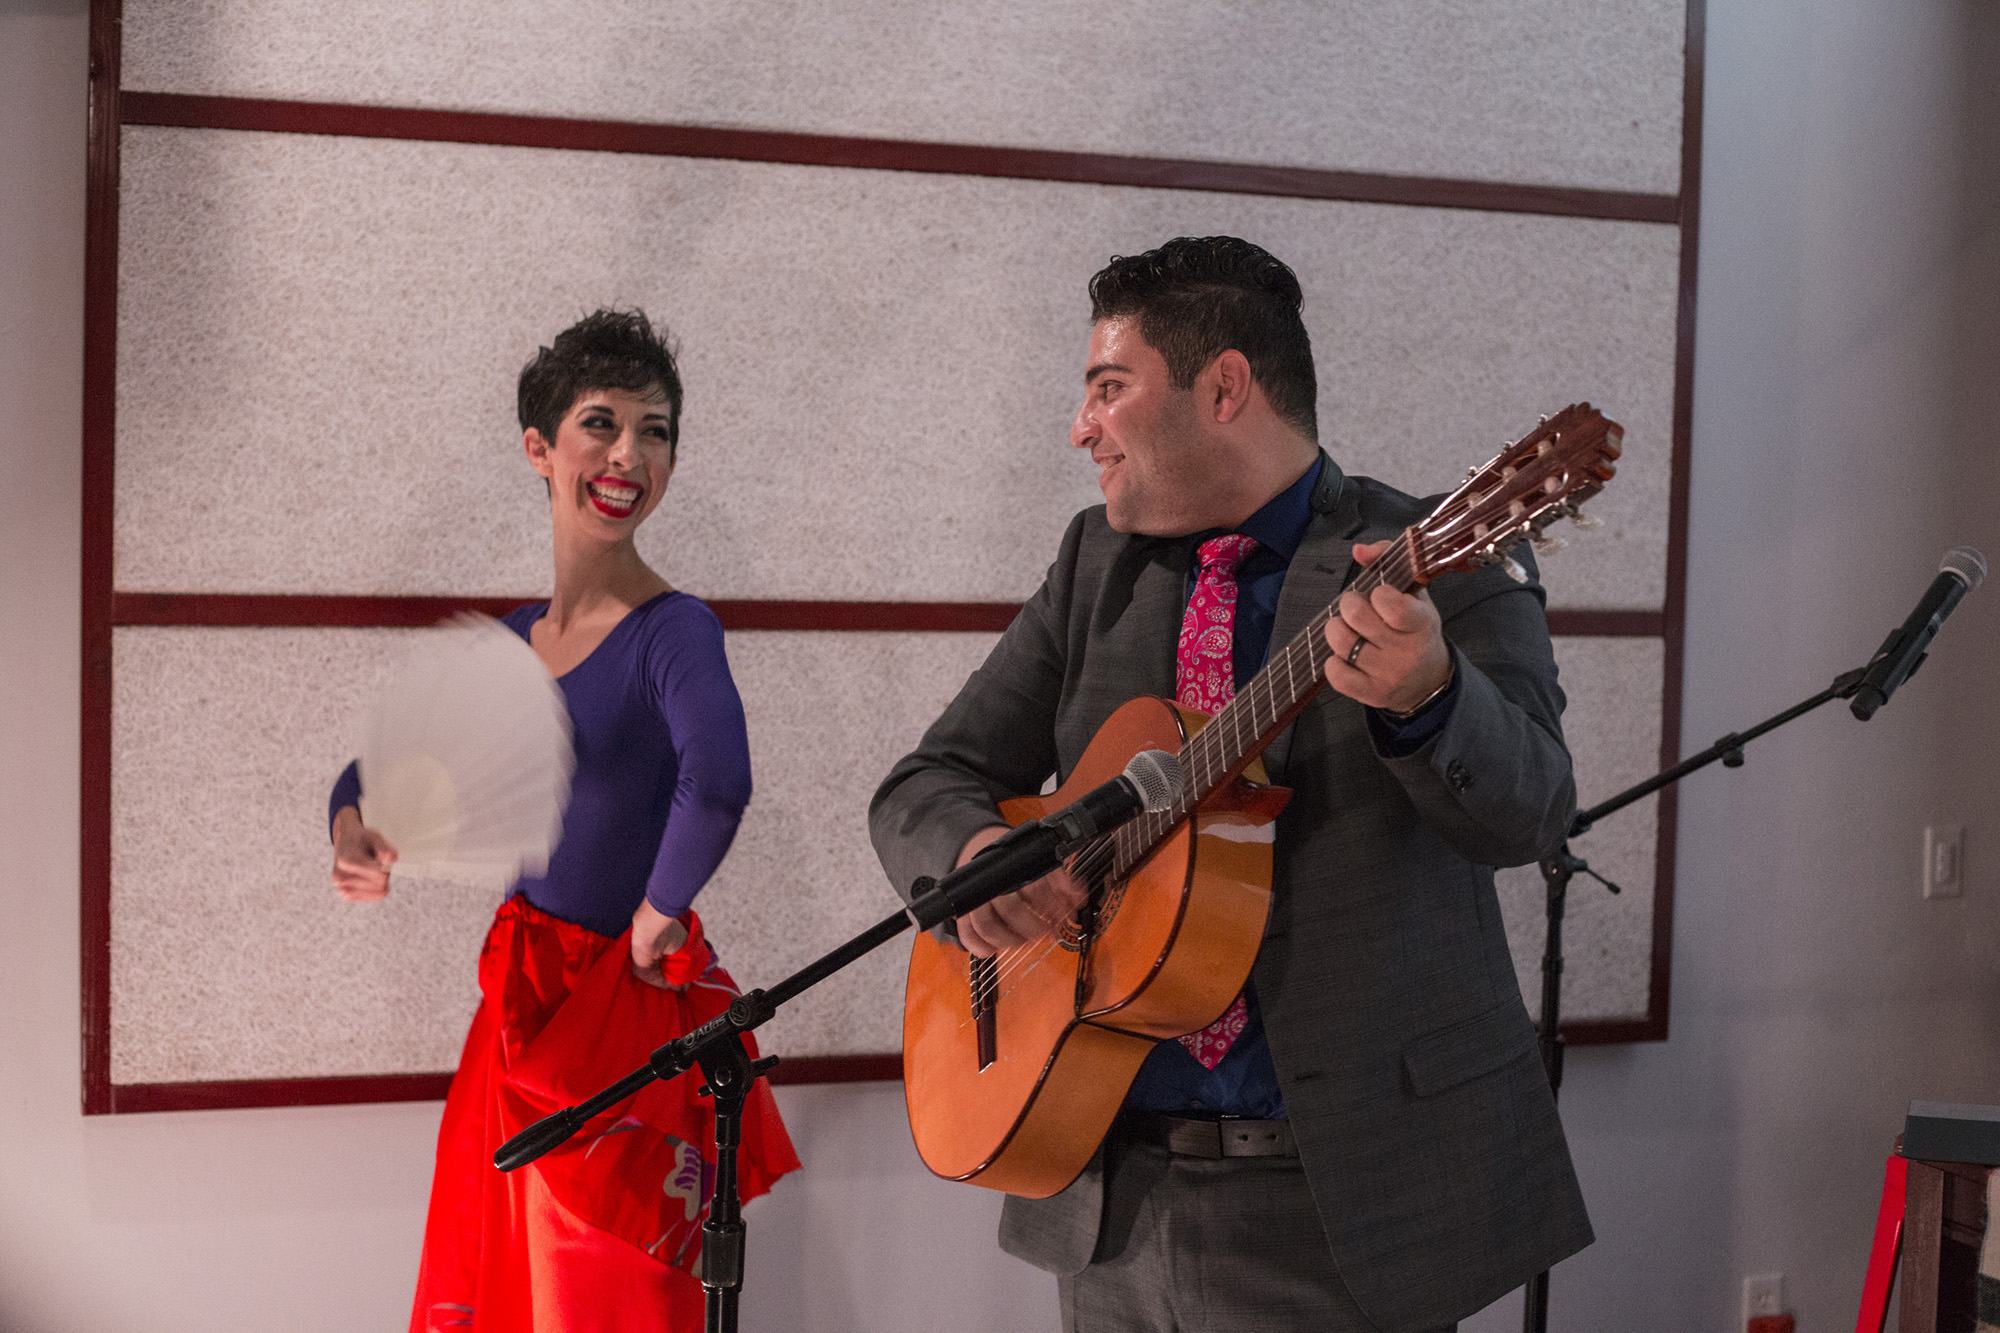 Omar locks eyes with his wife, Jasmín, on stage, as violinist Patrick Contreras makes his way offstage and into the crowd during the final number of their performance. (Brittany Greeson/The GroundTruth Project)